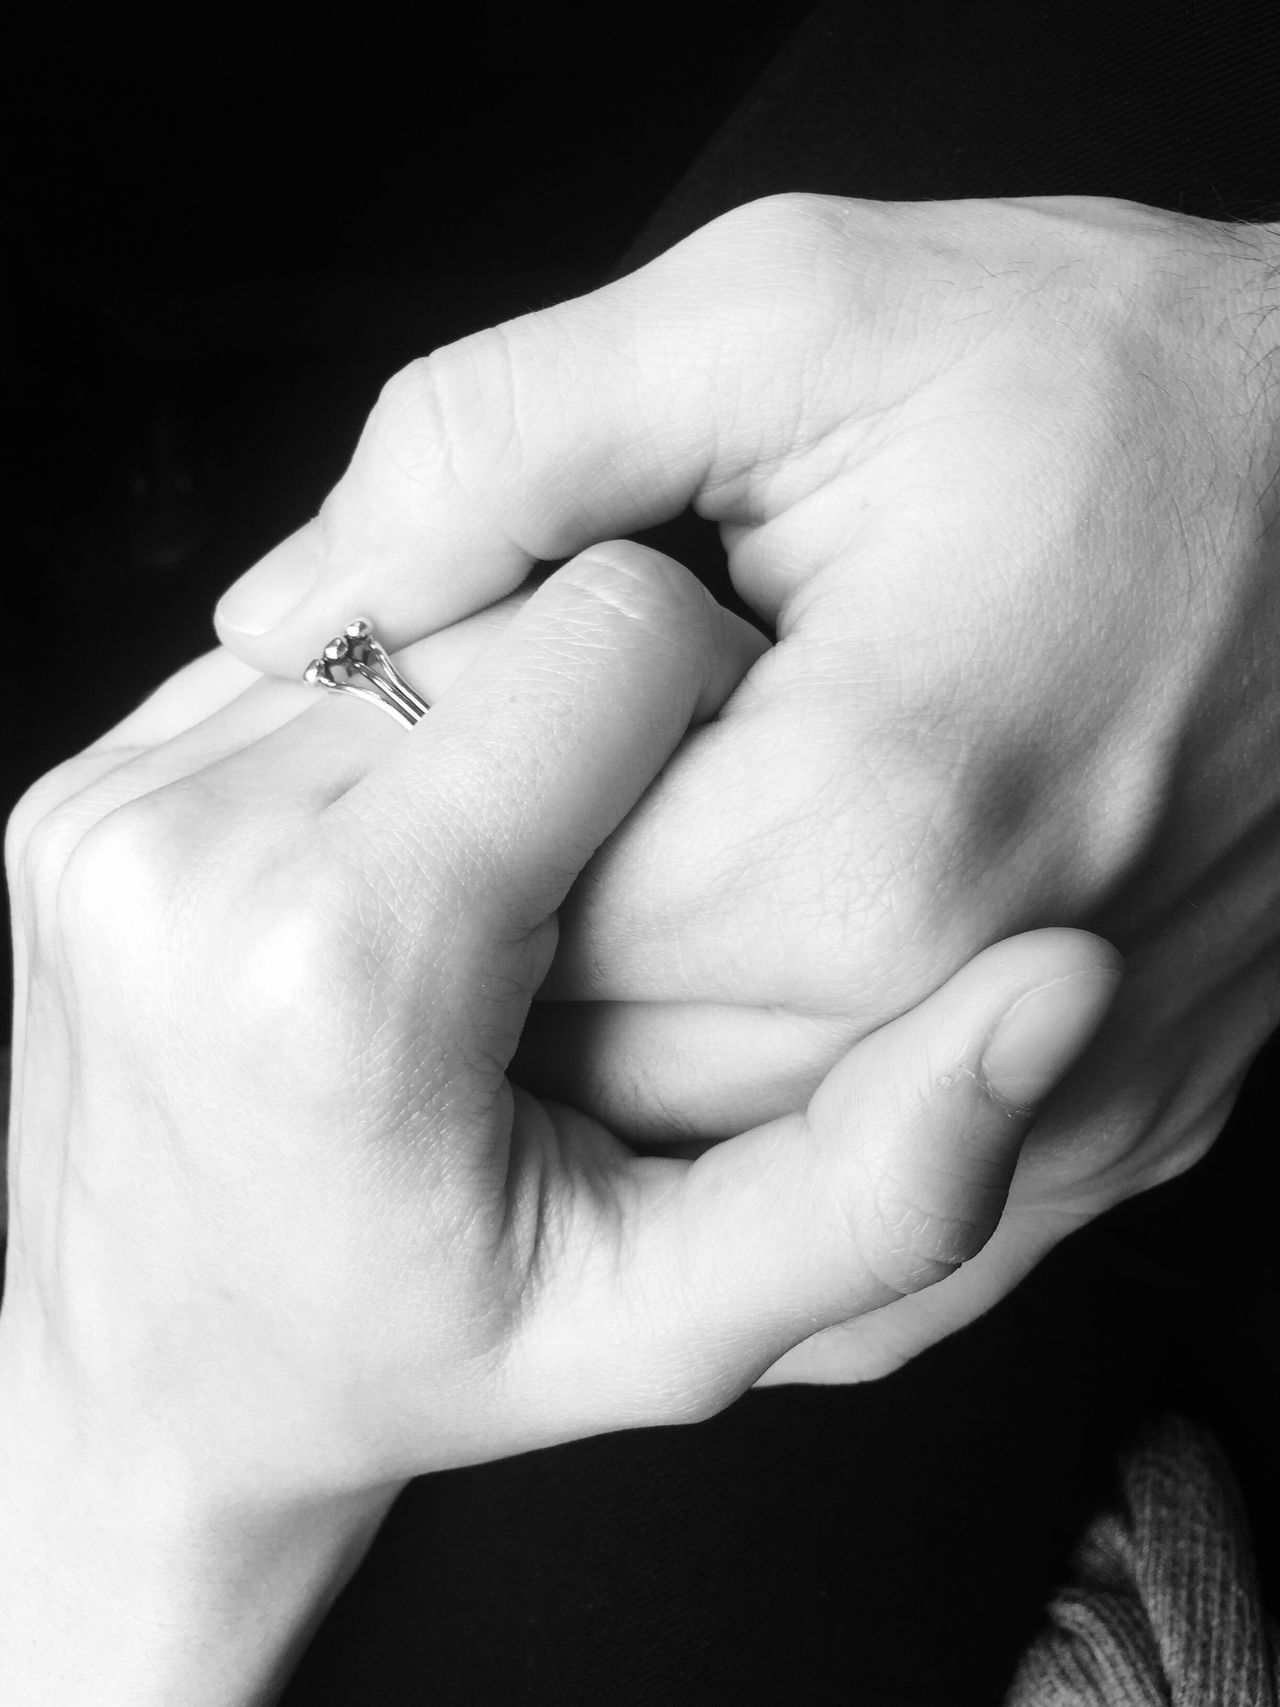 Two People Love Close-up Bonding Togetherness Real People IPhoneography Holding Hands Relationship People Blackandwhite Photography Blackandwhite Black And White